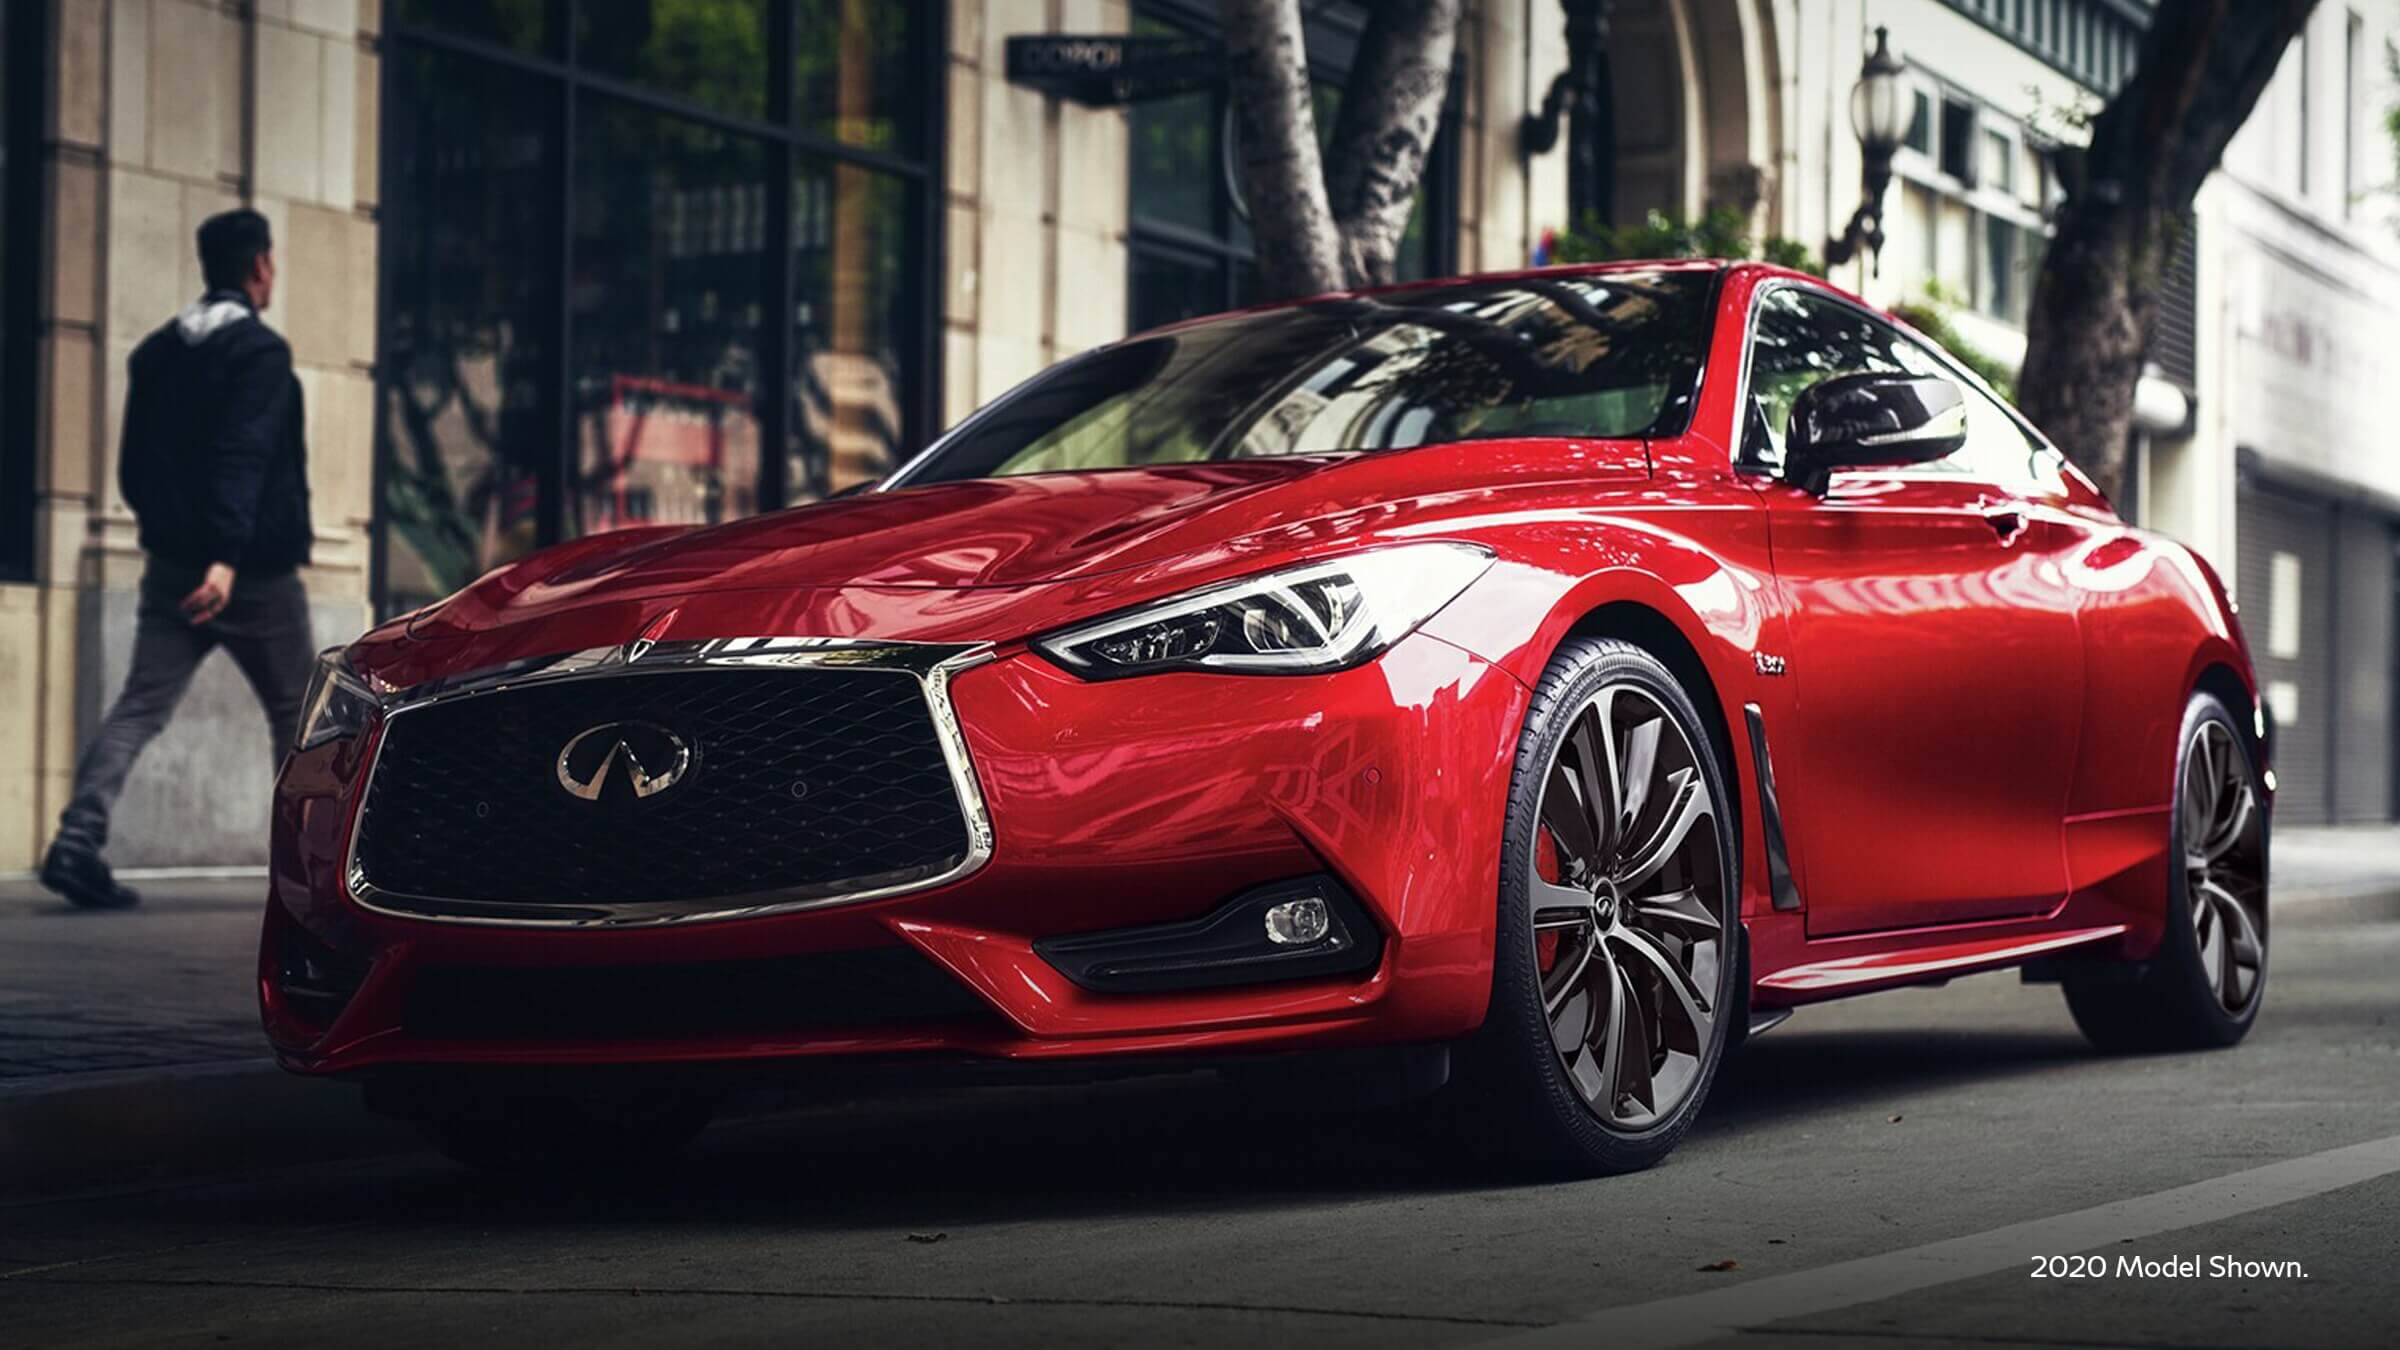 2021 Infiniti Q60 with an elevated design expression